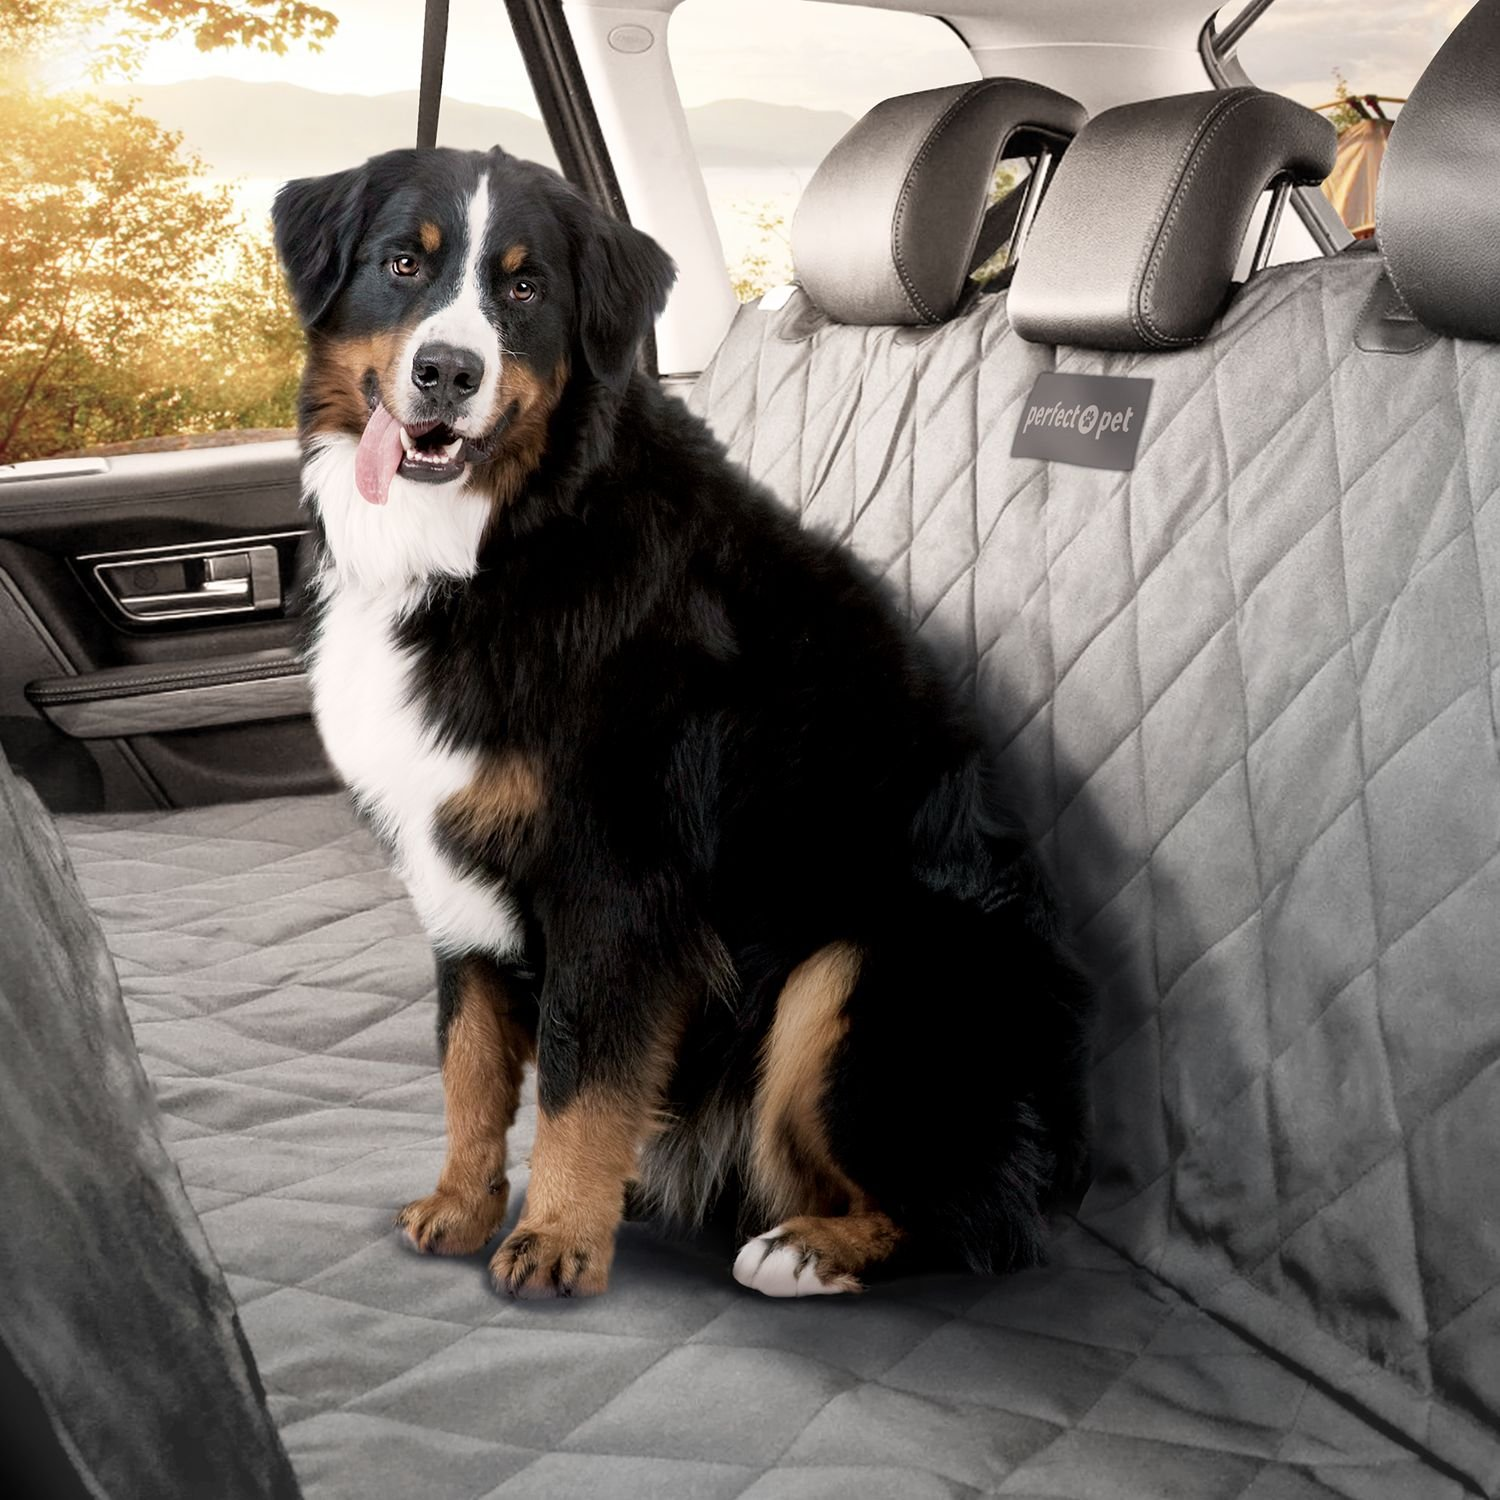 amazon     perfect pet seat cover   dog and cat car seat cover hammock   waterproof and machine washable   non slip quilted technology to protect seats in     amazon     perfect pet seat cover   dog and cat car seat cover      rh   amazon